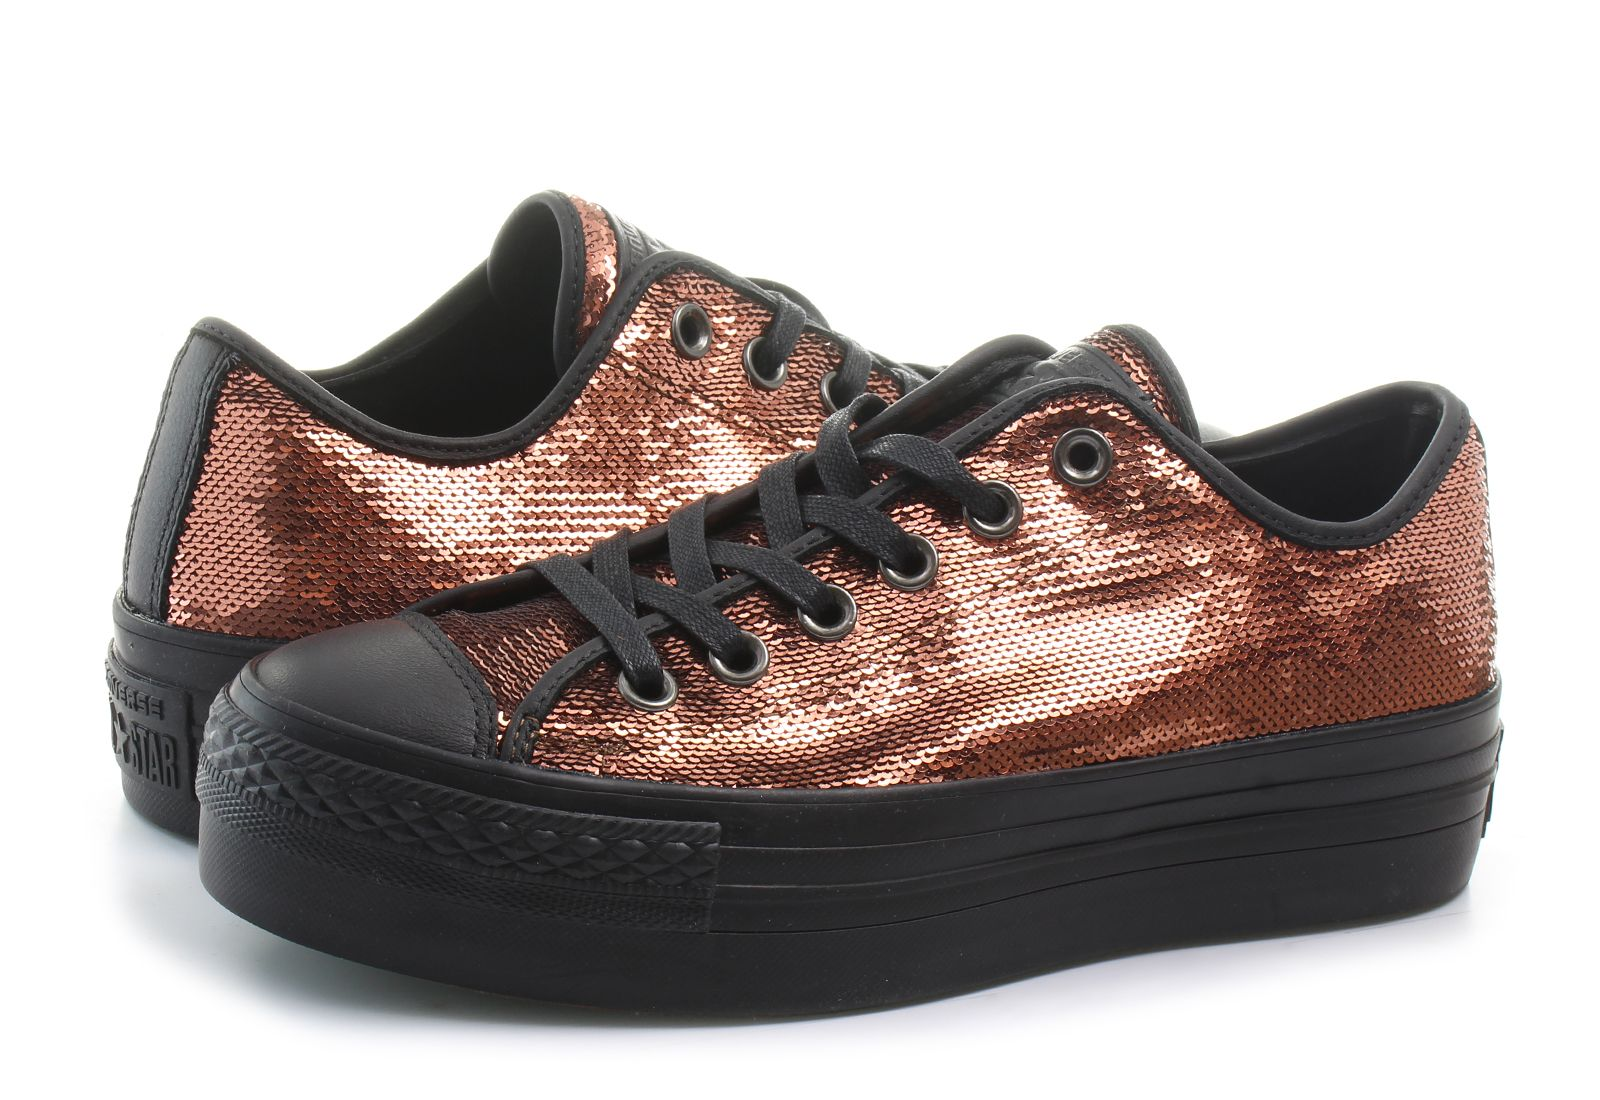 <a href='https://www.officeshoes.hu/cipo-converse-tornacipo-chuck-taylor-all-star-platform-sequins/16514' target='_blank' rel='noopener noreferrer'>Converse Chuck Taylor All Star Platform Sequin</a></p><br />